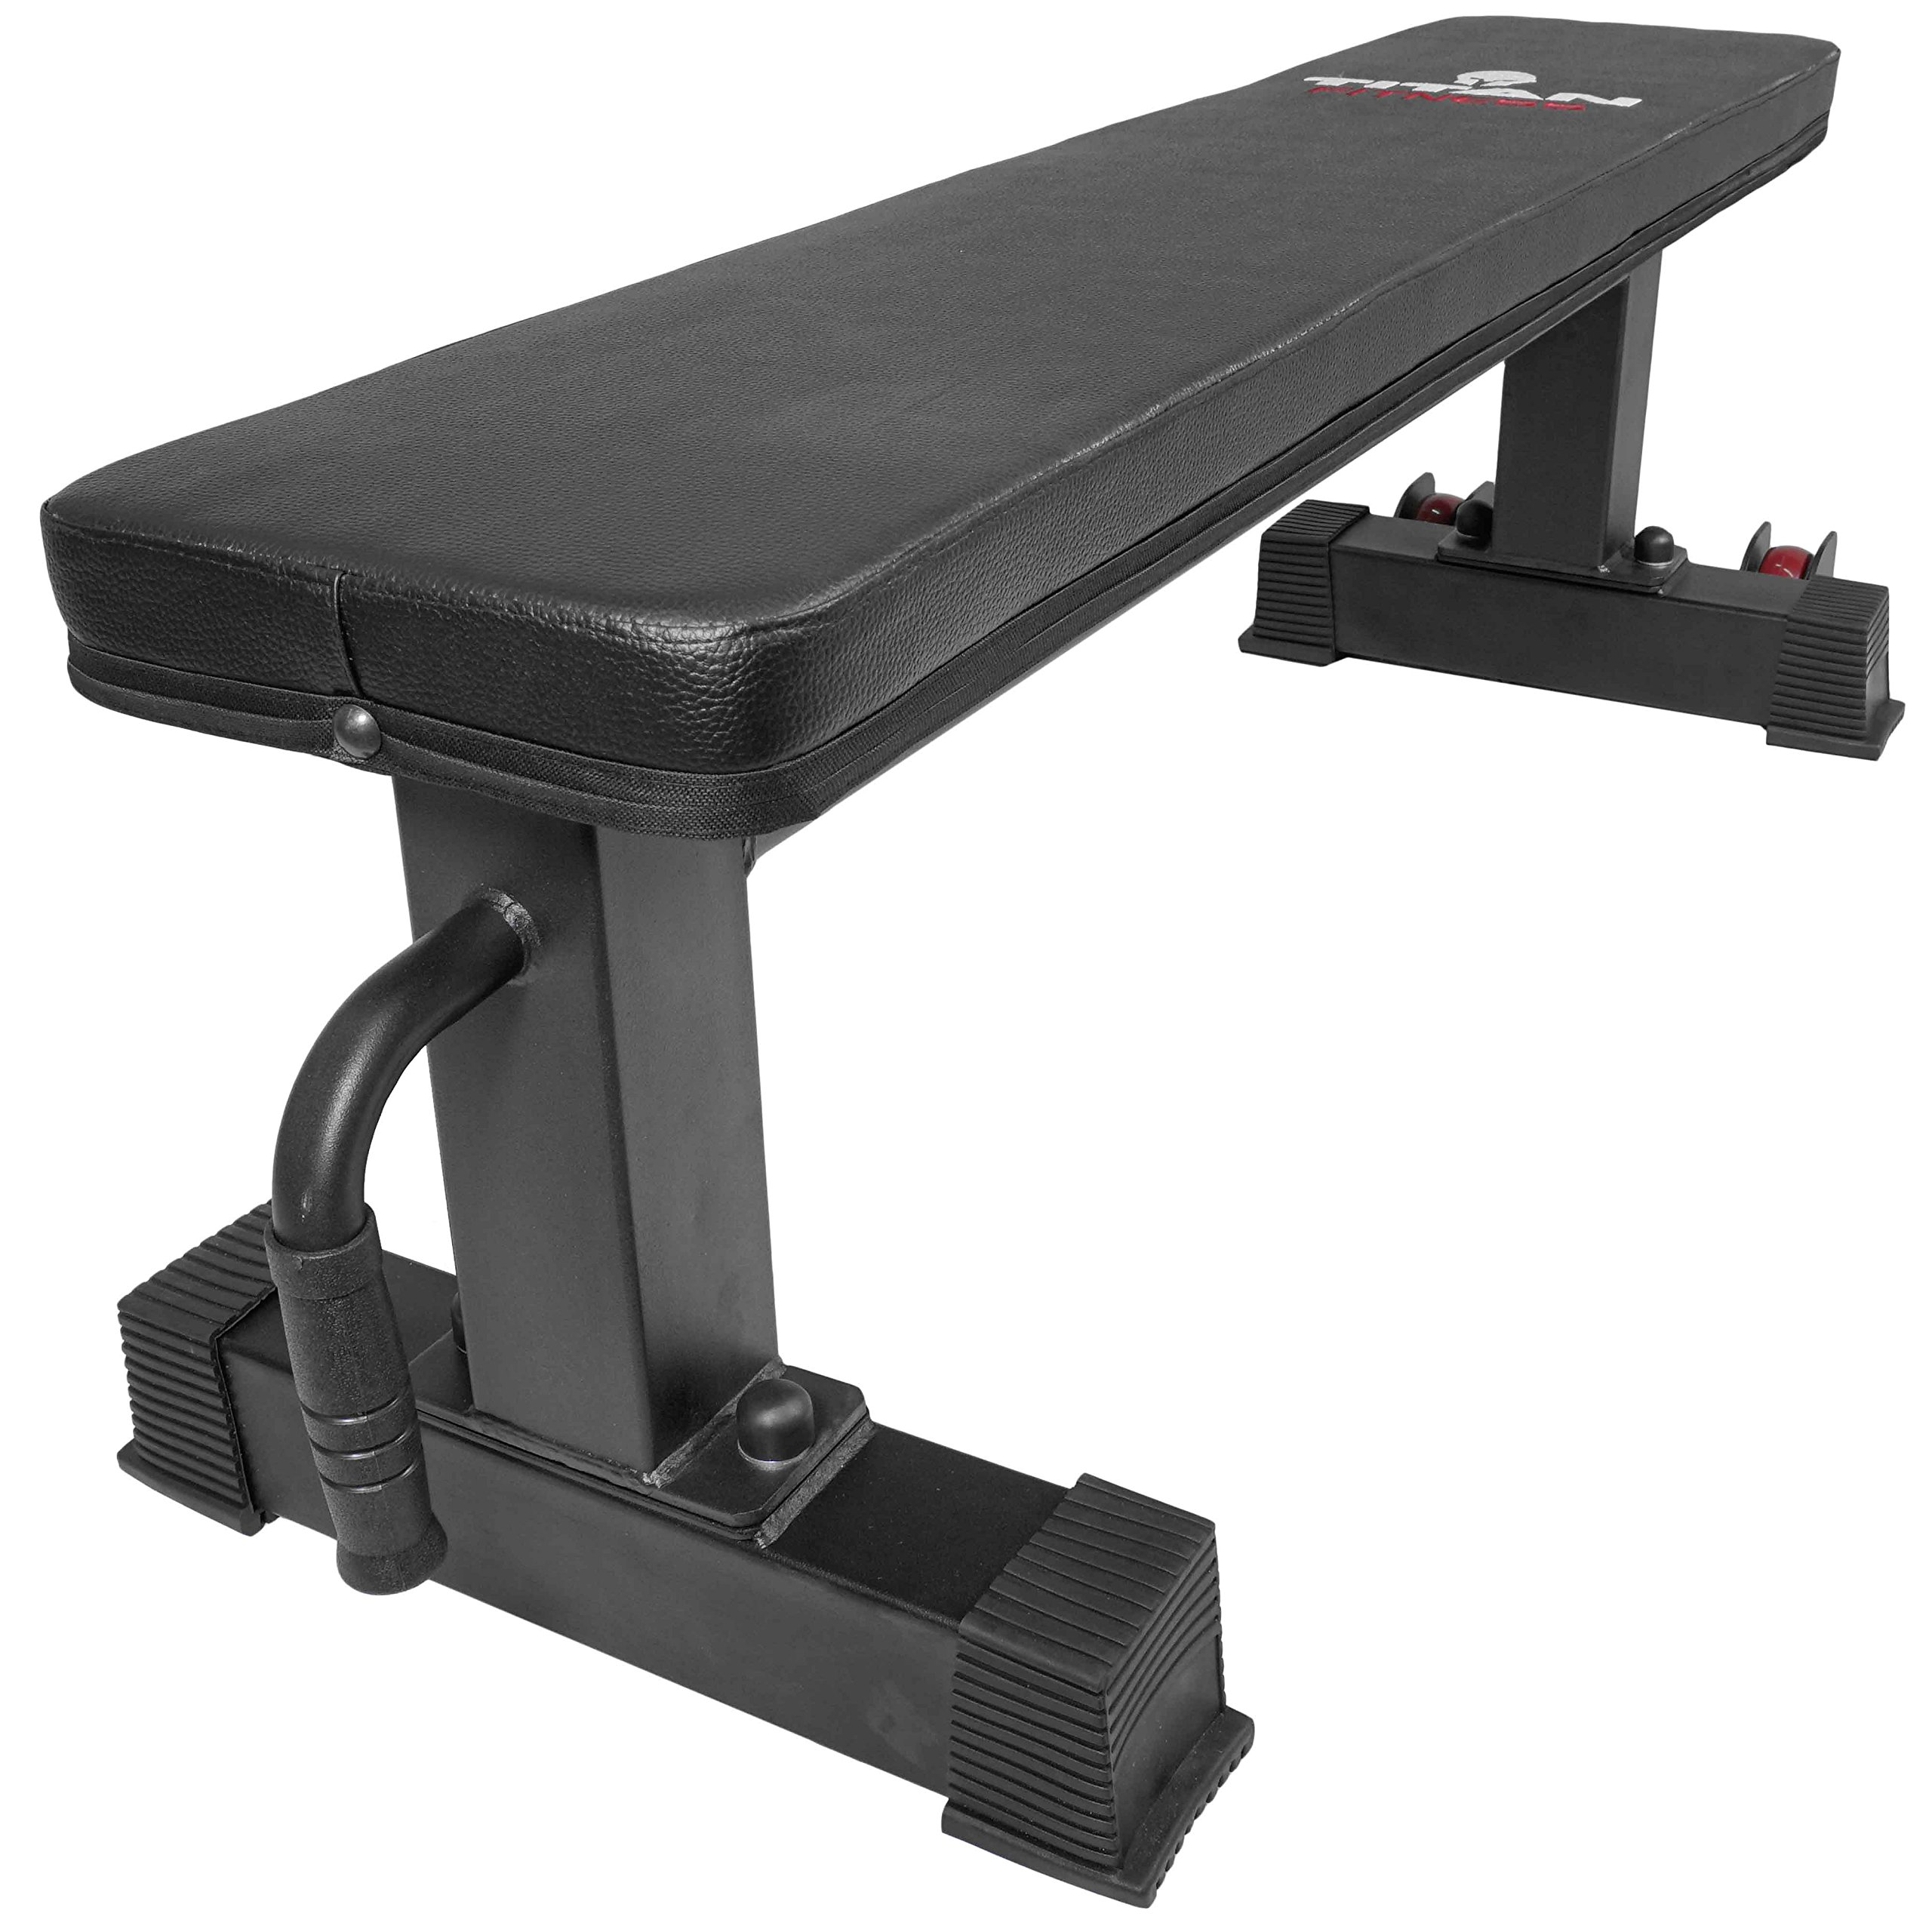 Titan Fitness Flat Weight Bench 1,000 lb Rated Capacity w/Handle & Wheels by Titan Fitness